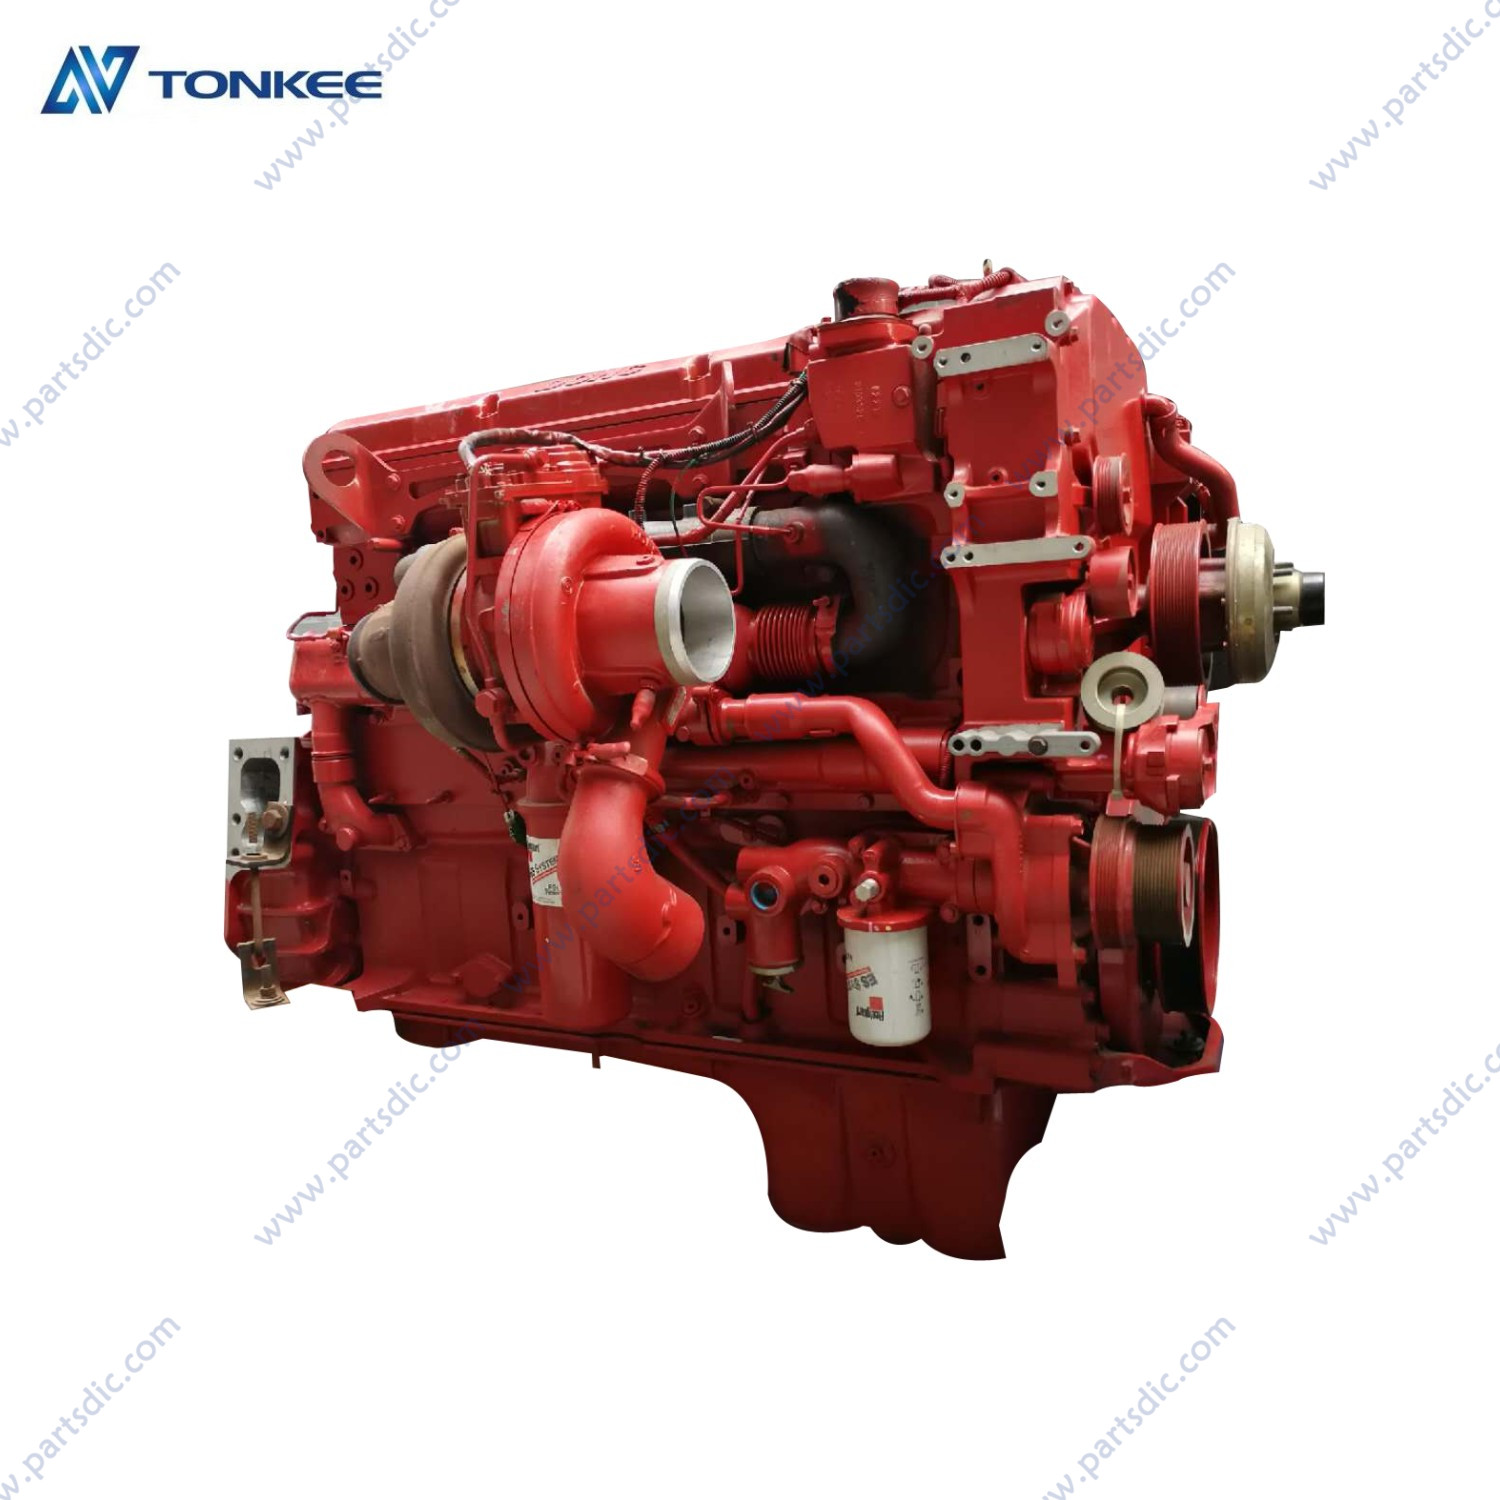 brand new 79298001 ISX485 8CEXH0912XAL complete engine assy 485HP 2000RPM earthmoving machine dozer engine assy for sell